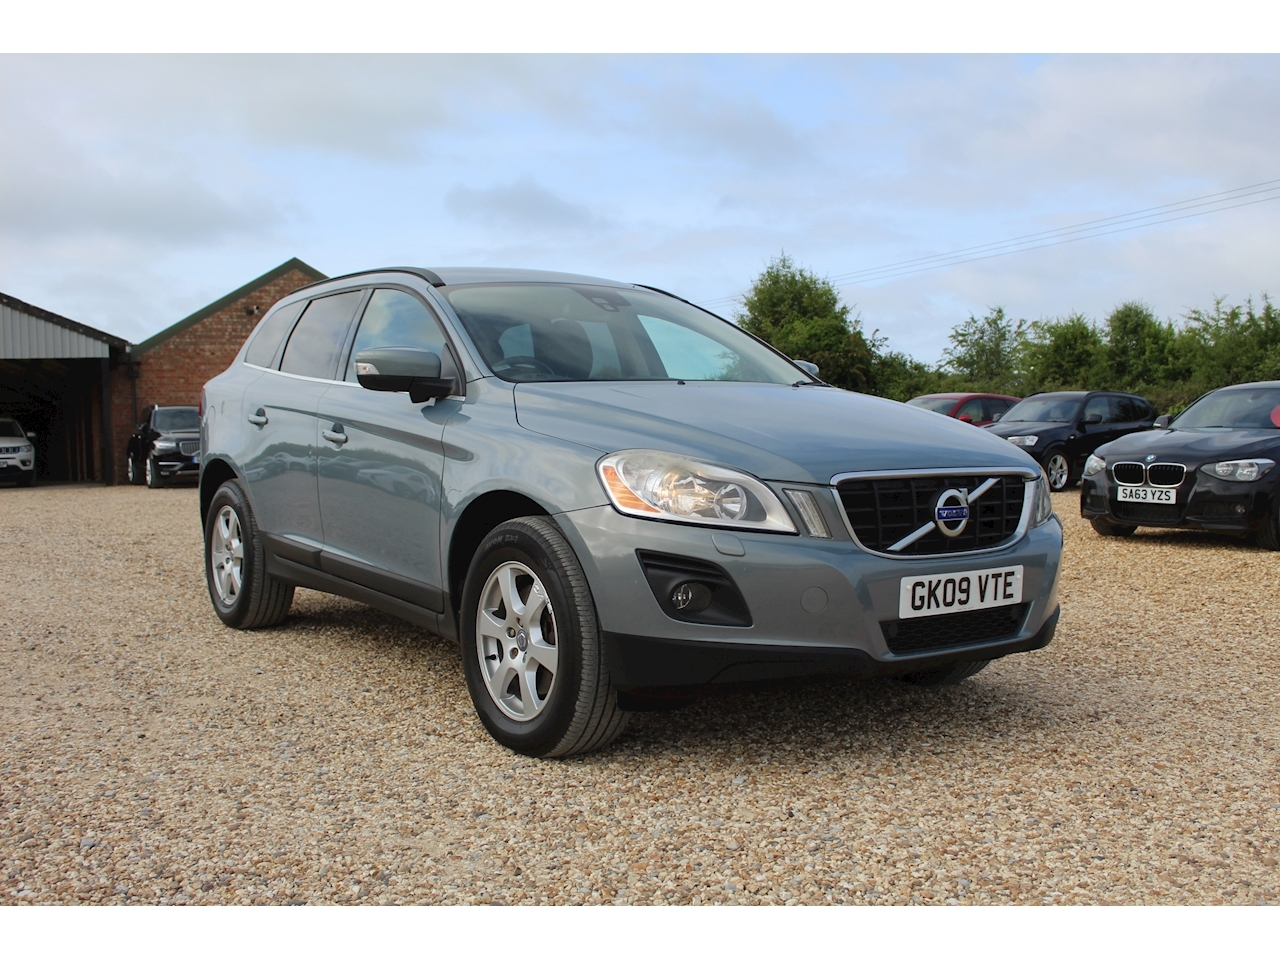 Xc60 D Se Awd Estate 2.4 Automatic Diesel